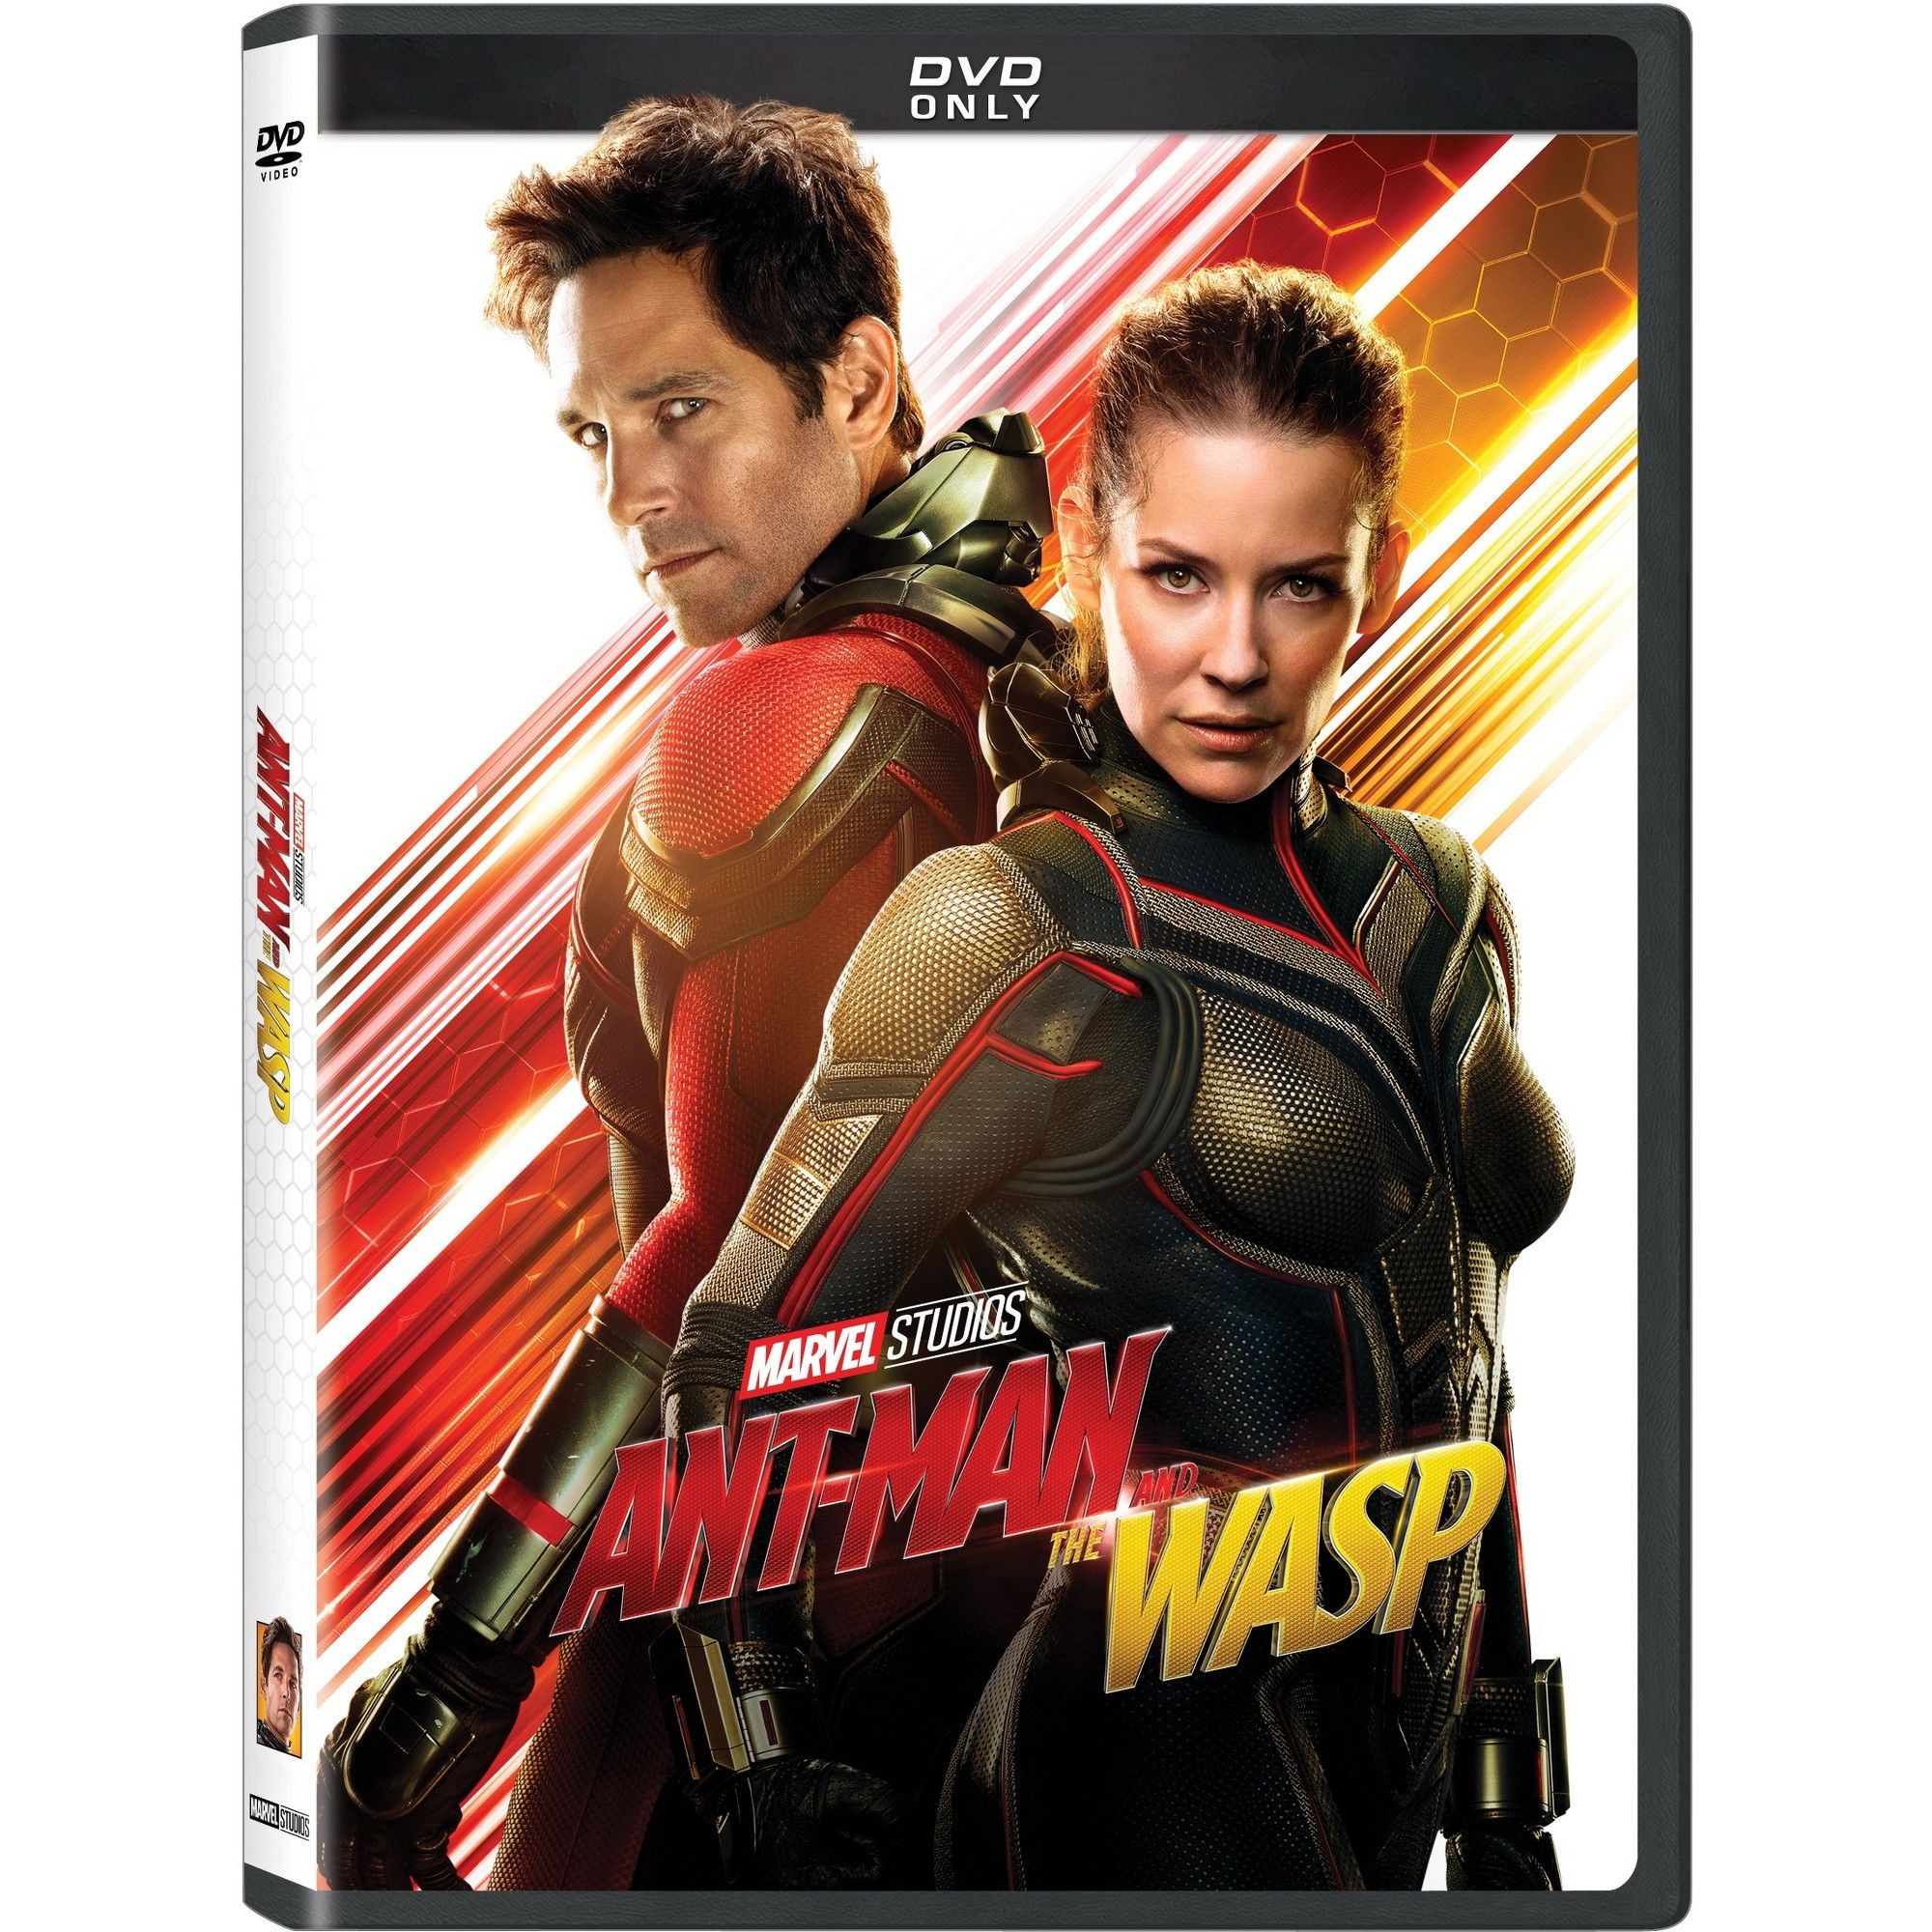 Marvel S Ant Man The Wasp Dvd In 2019 Wasp Movie Ant Man